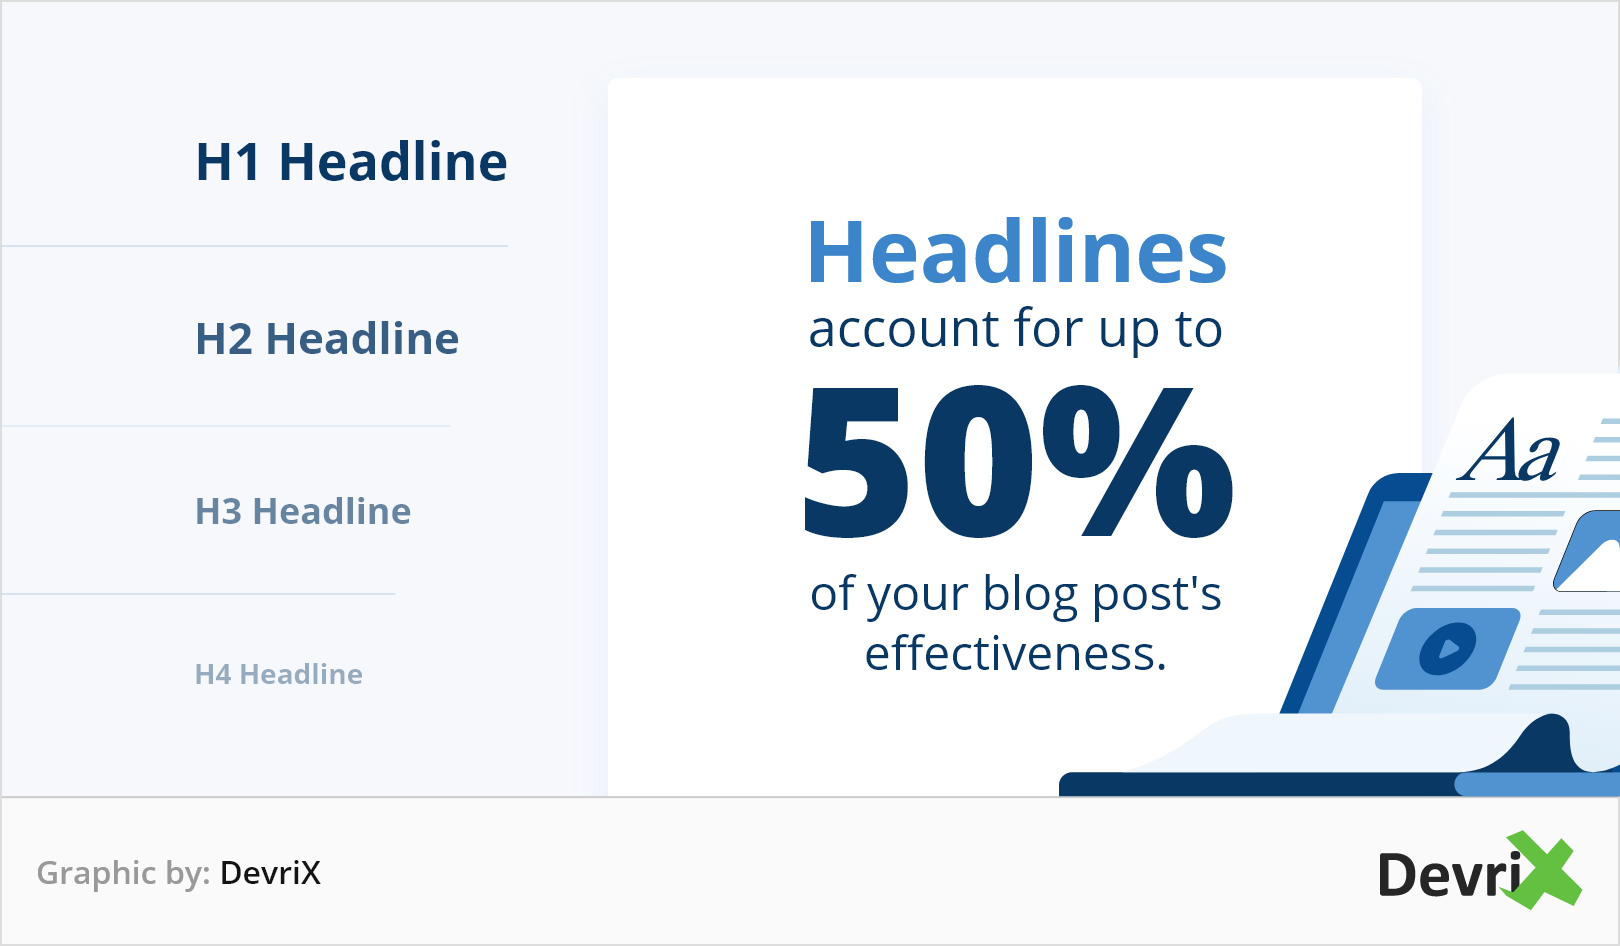 Headlines Account for up to 50% of Your Blog Post's Effectiveness